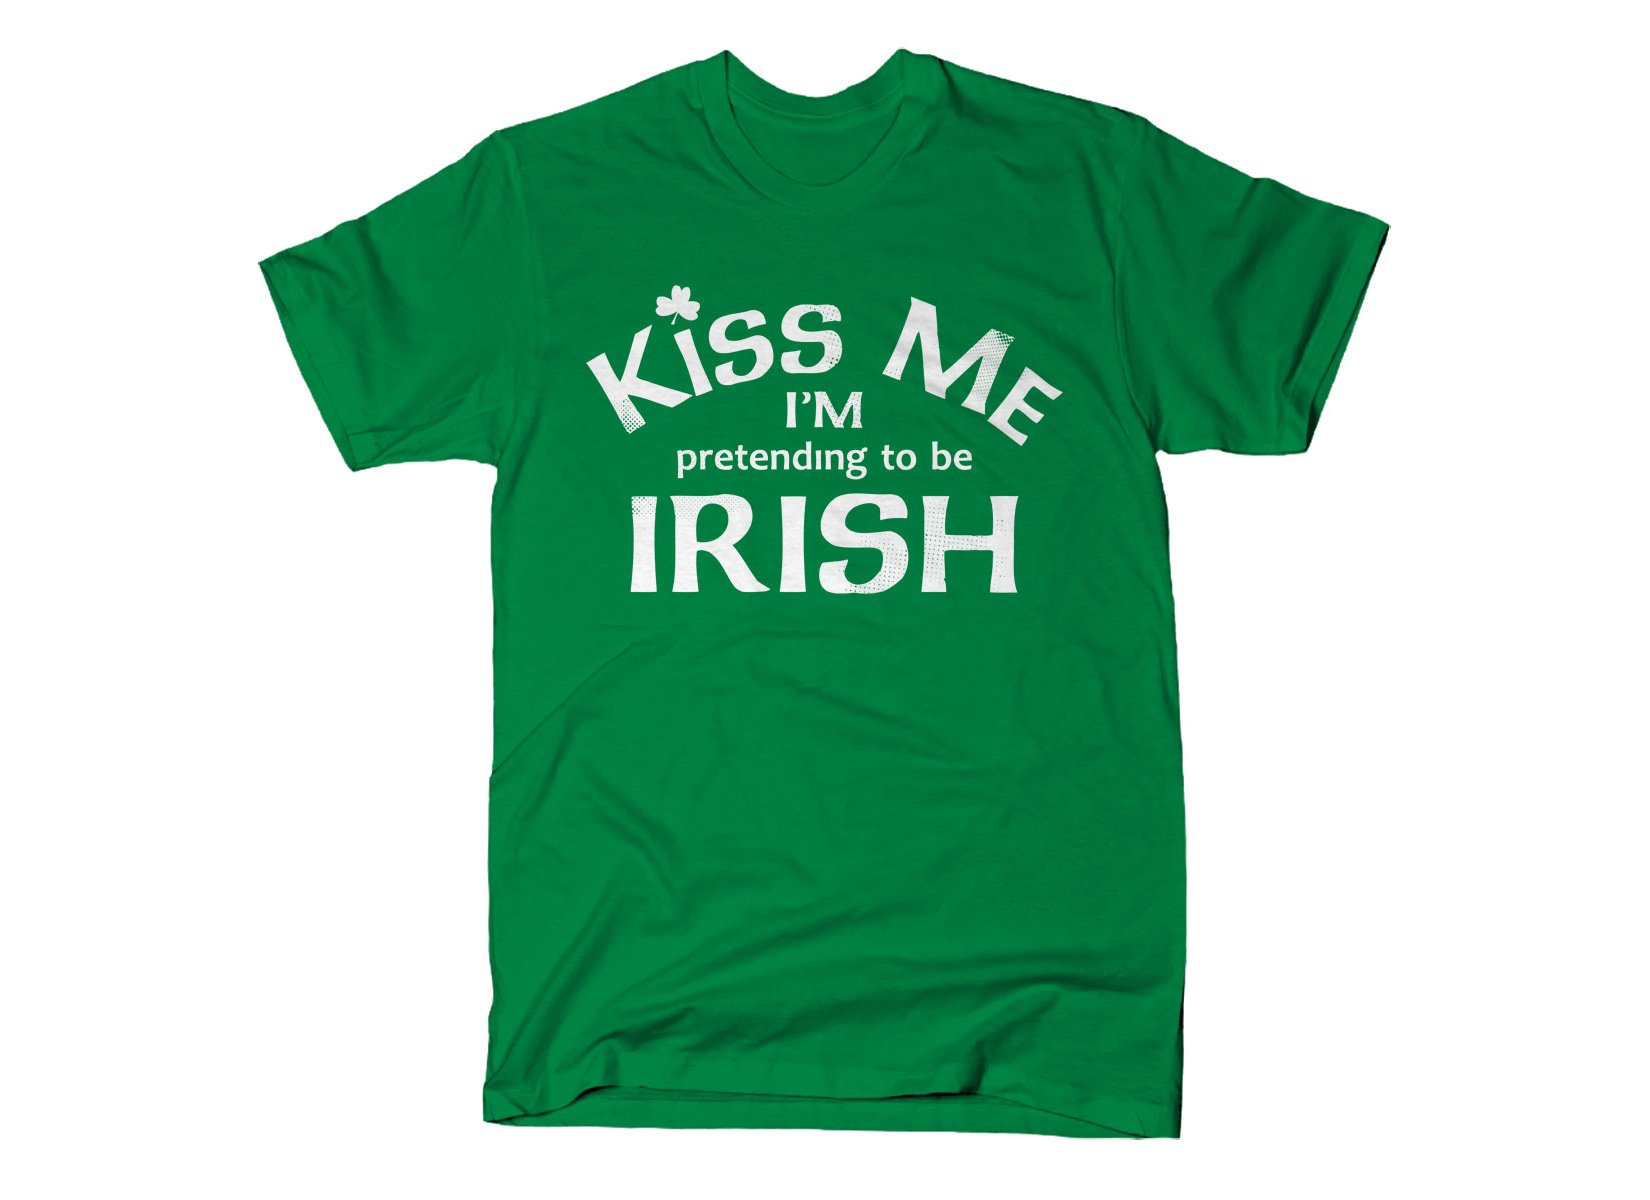 Kiss Me I'm Pretending To Be Irish on Mens T-Shirt